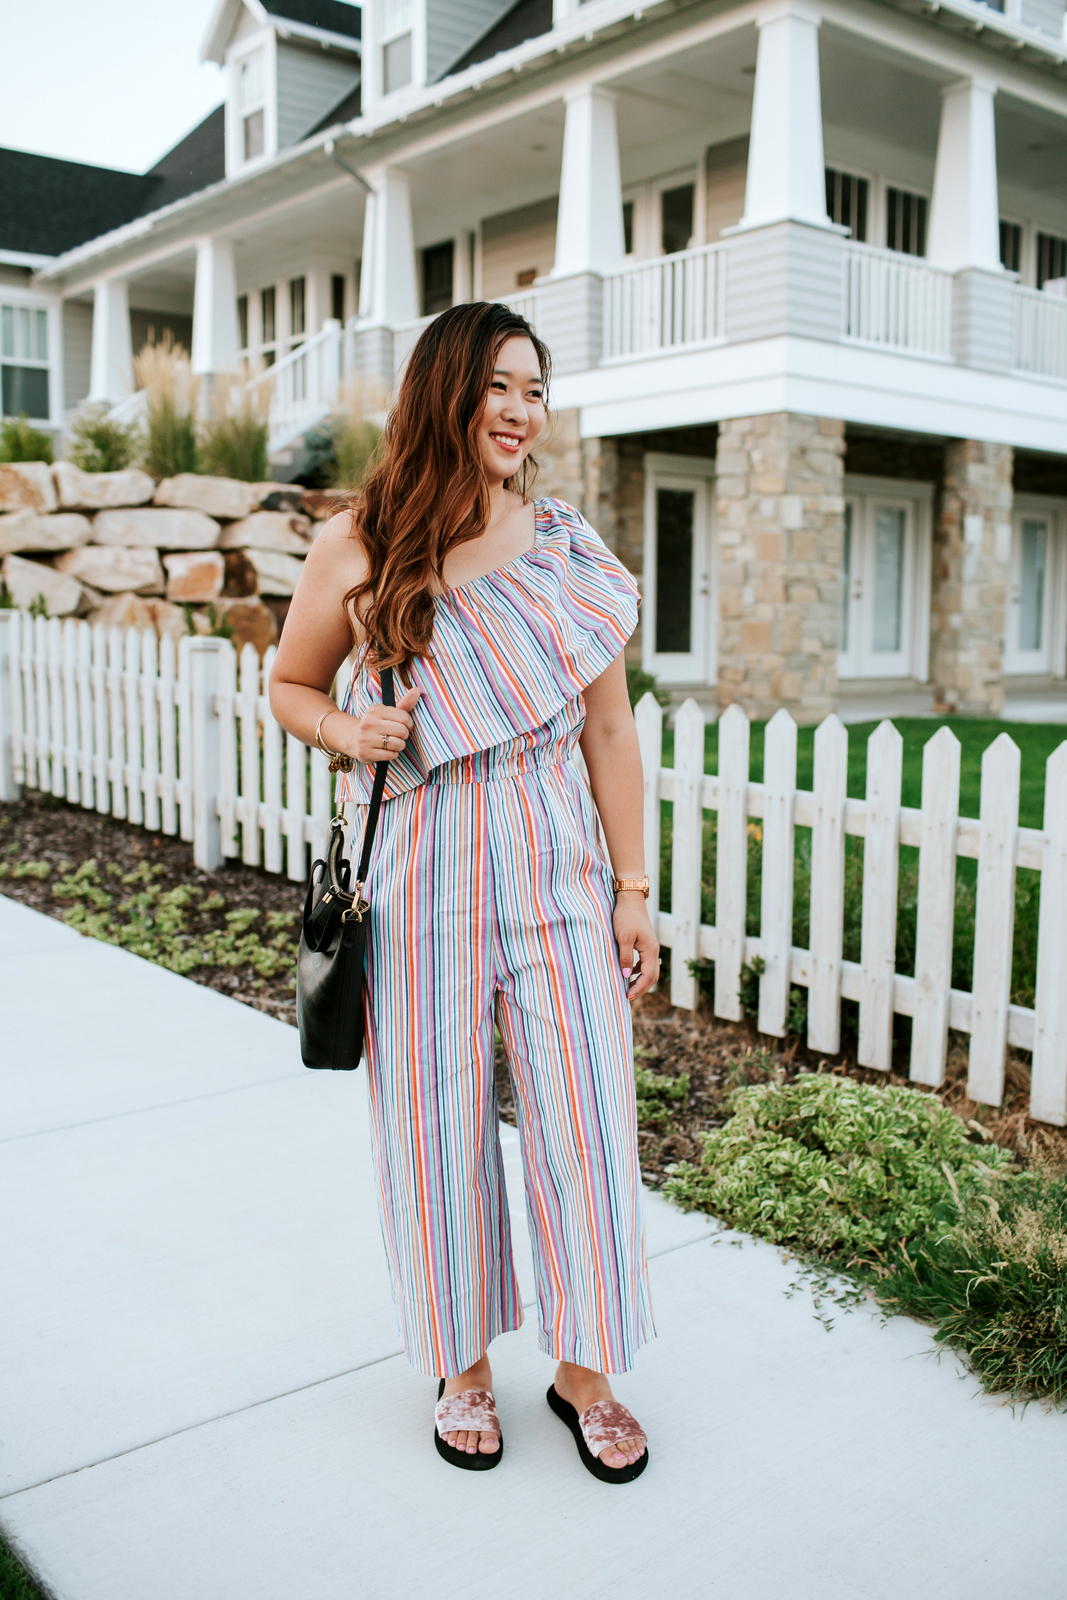 Famous Footwear Slides - Perfect For Back To School by Utah fashion blogger Sandy A La Mode